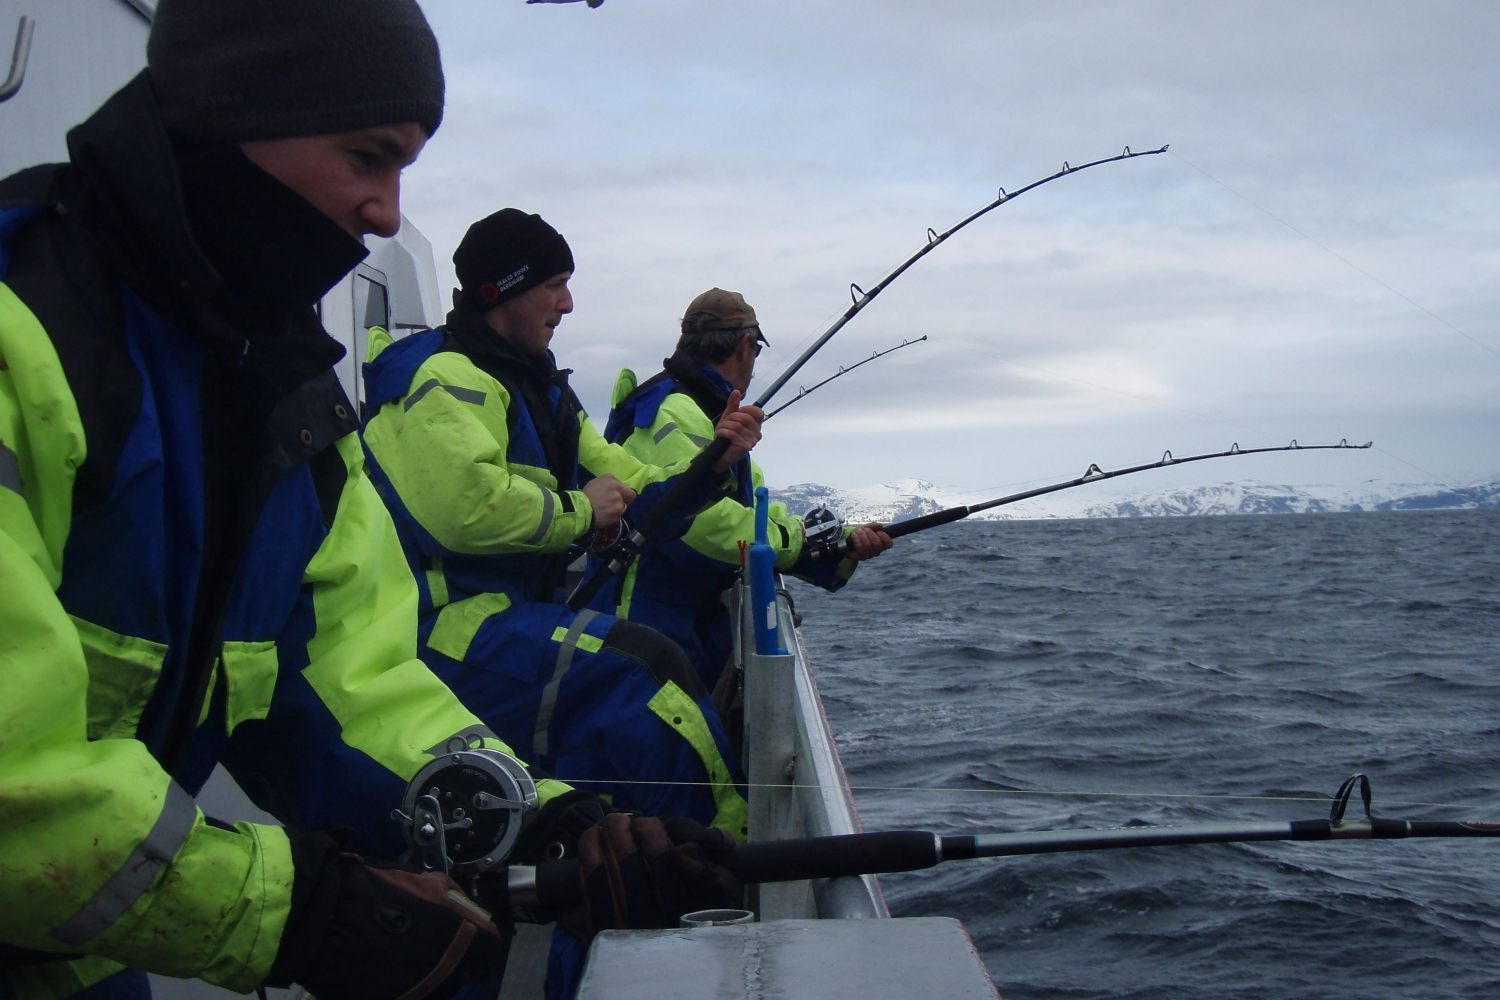 Guests fishing with fishing rods